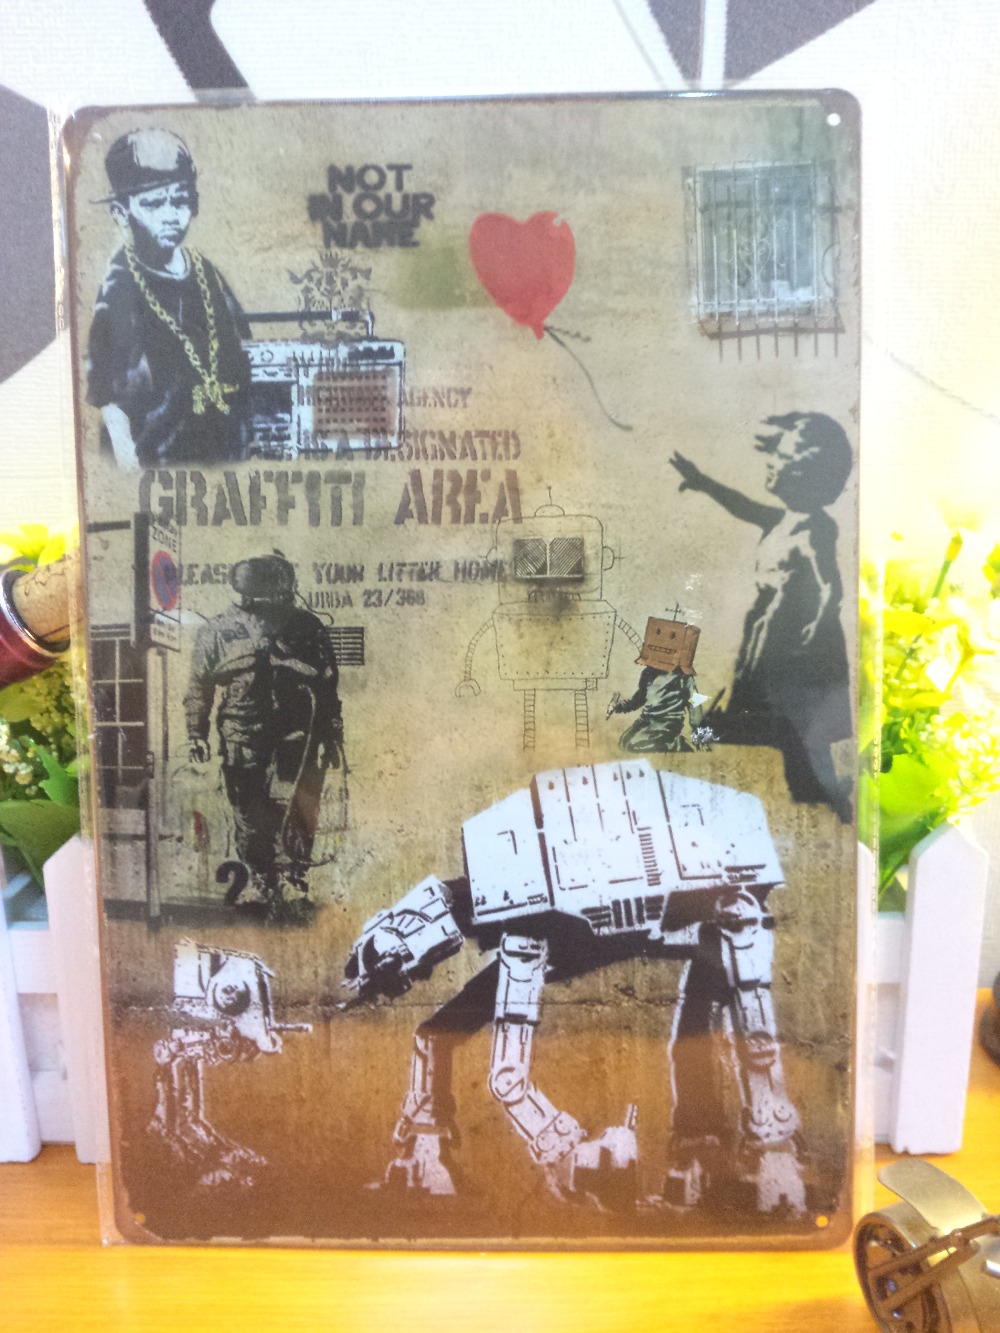 Vintage metal painting retro metal tin sign 20cm*30cm art posters Craft Area wall stickers home cafe bar pub wall decor